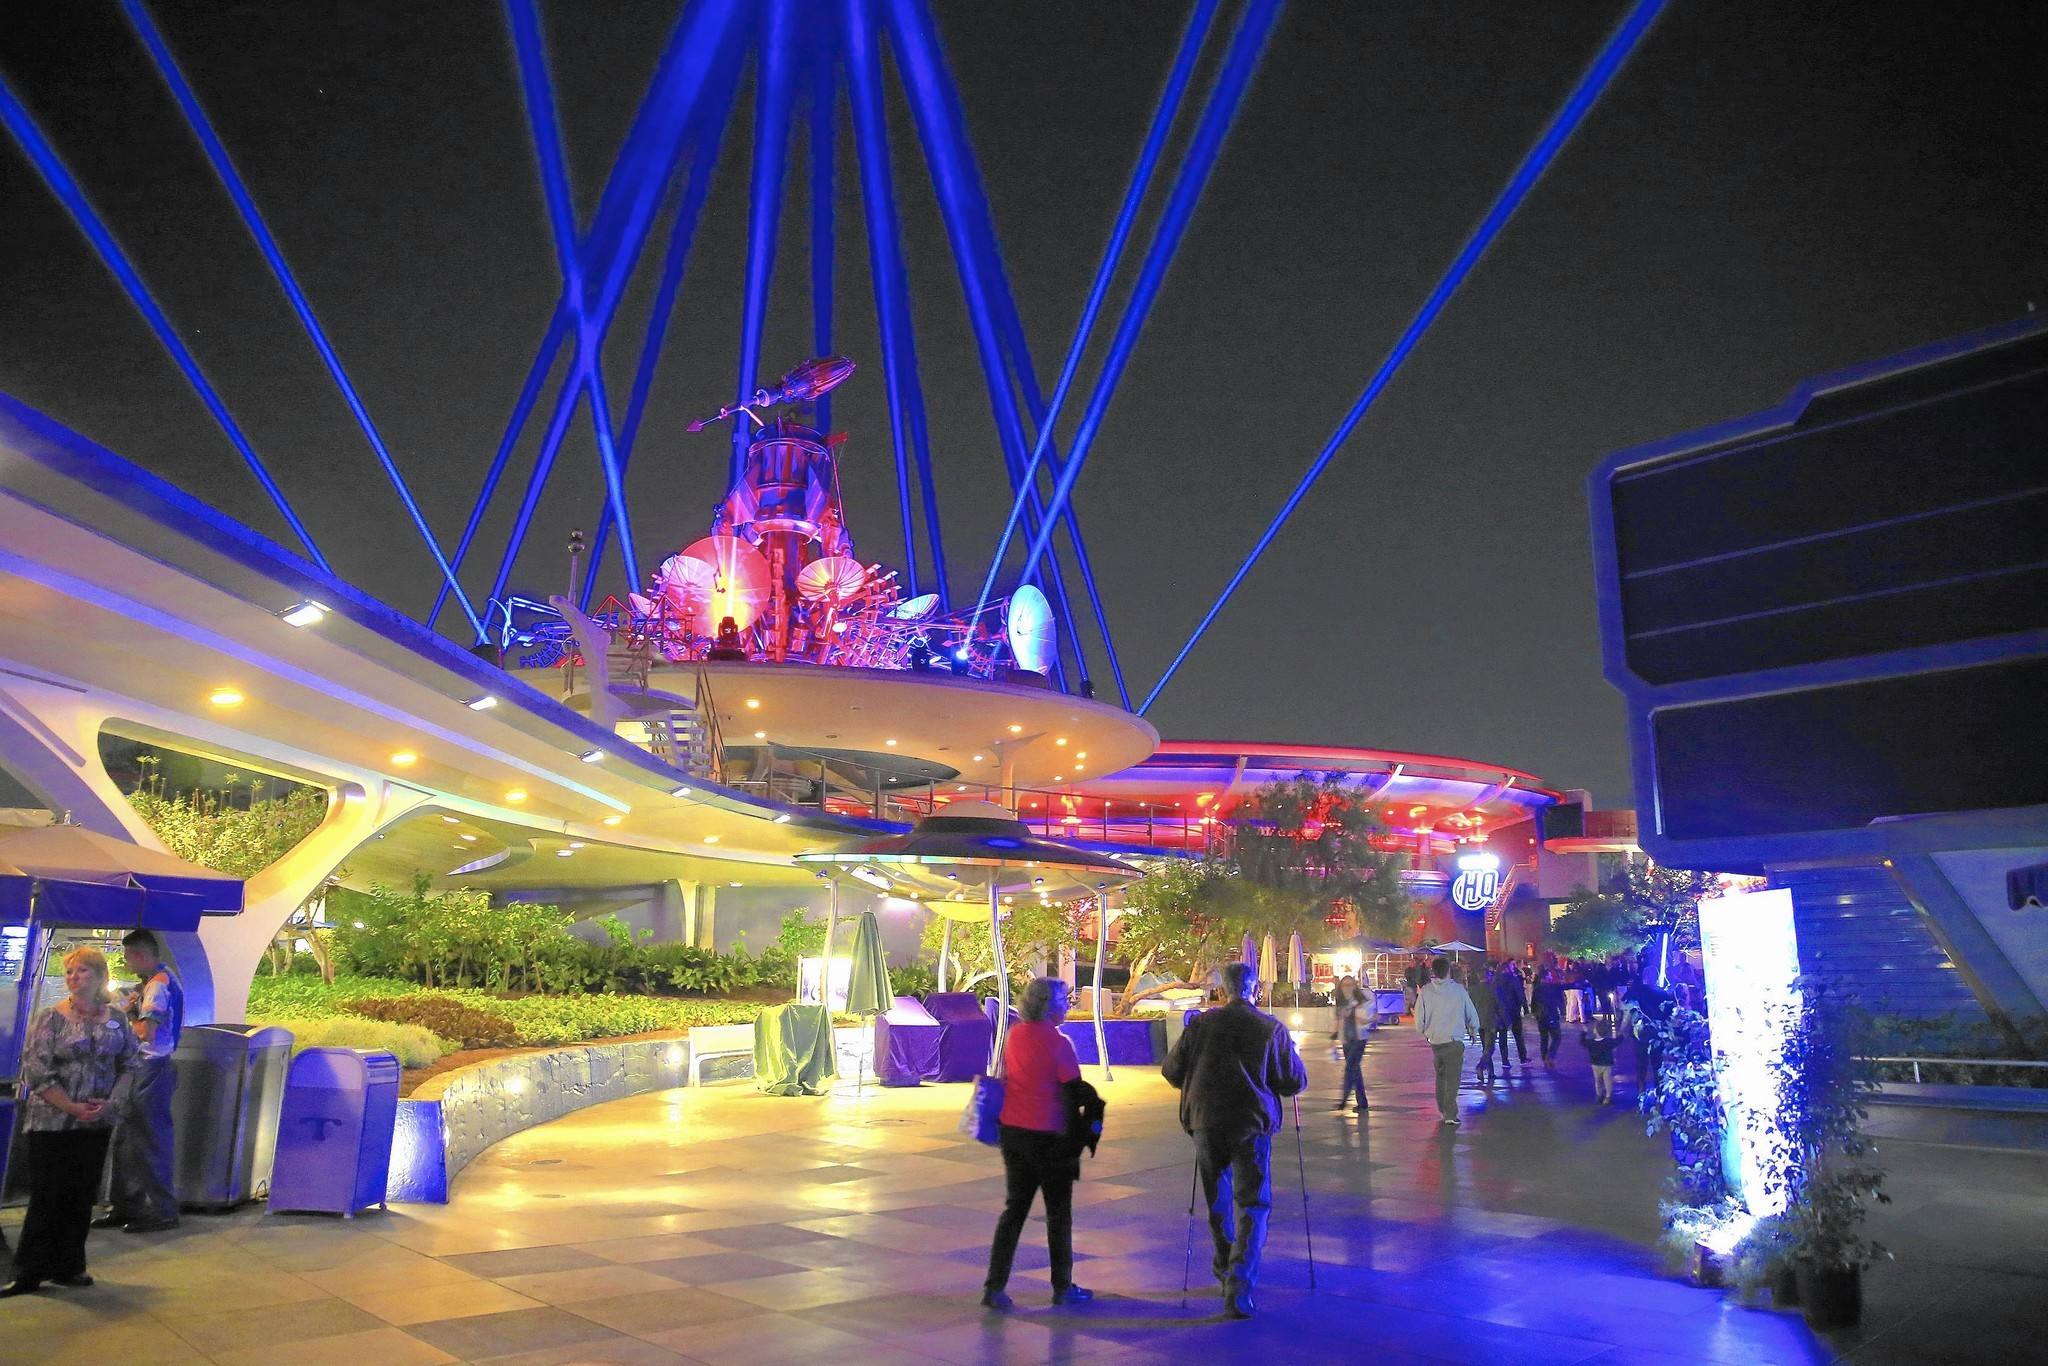 Disneyland to close some attractions to build star wars land la times